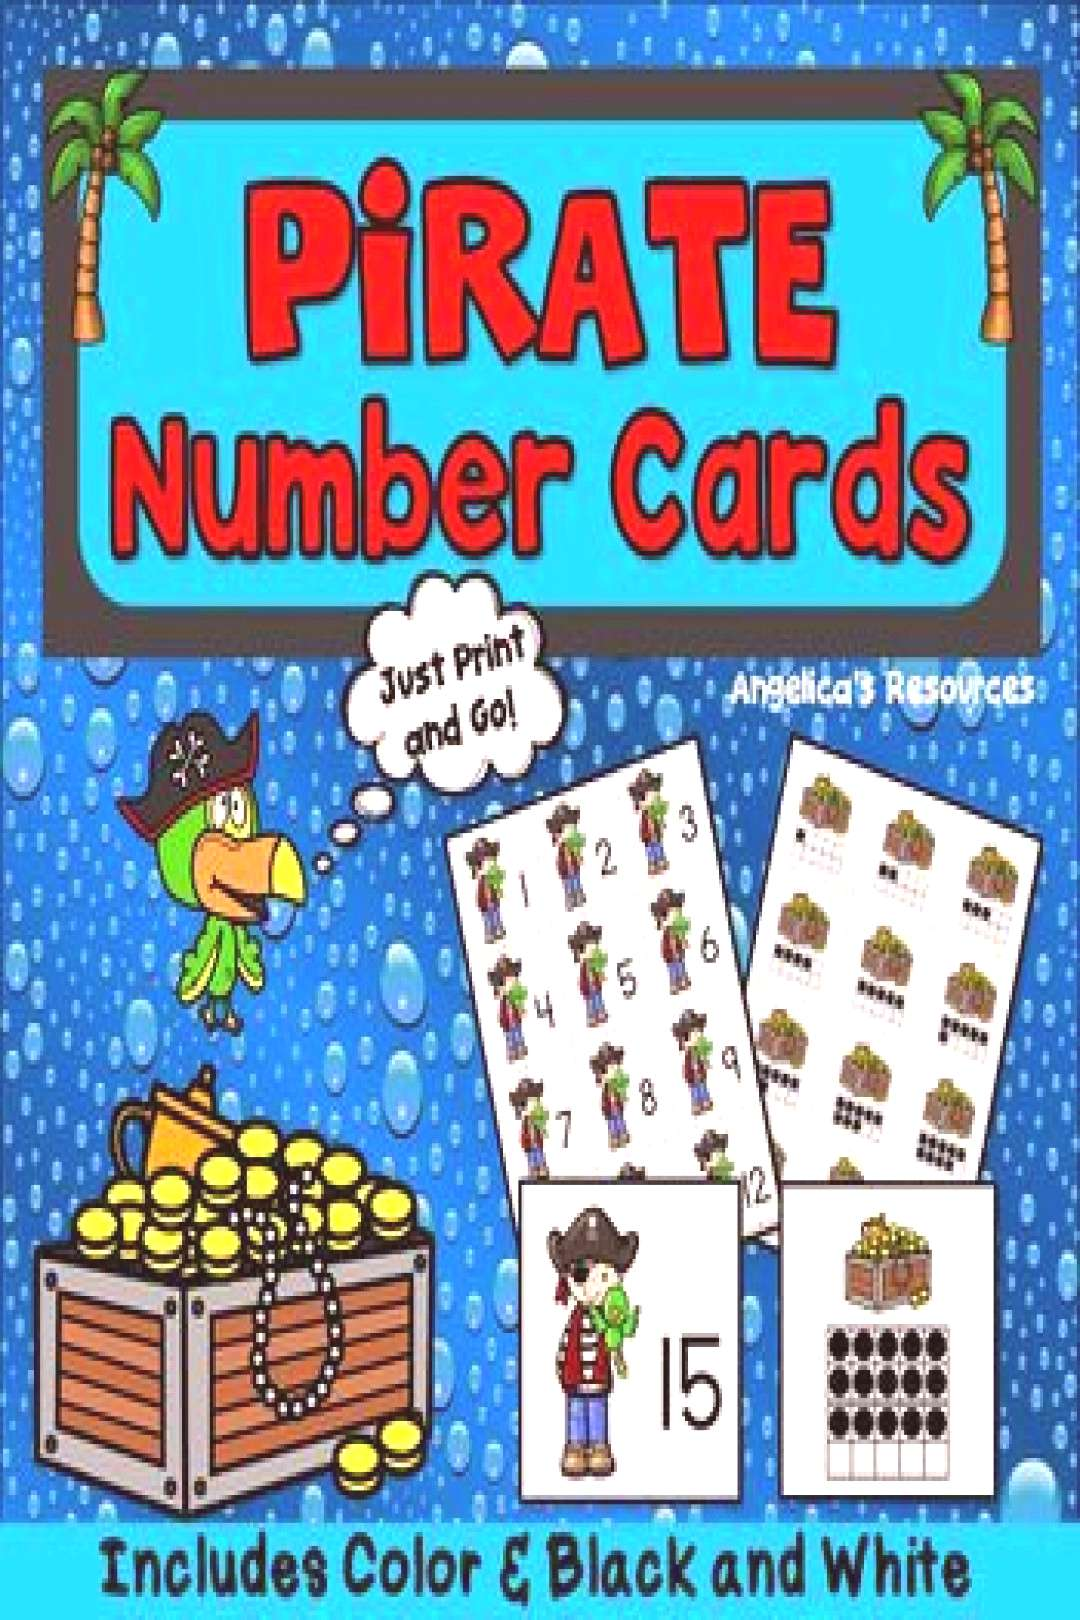 Pirates Theme Counting Cards - Numbers 1-20 - Number Sense - Ten Frames Pirates Theme Counting C